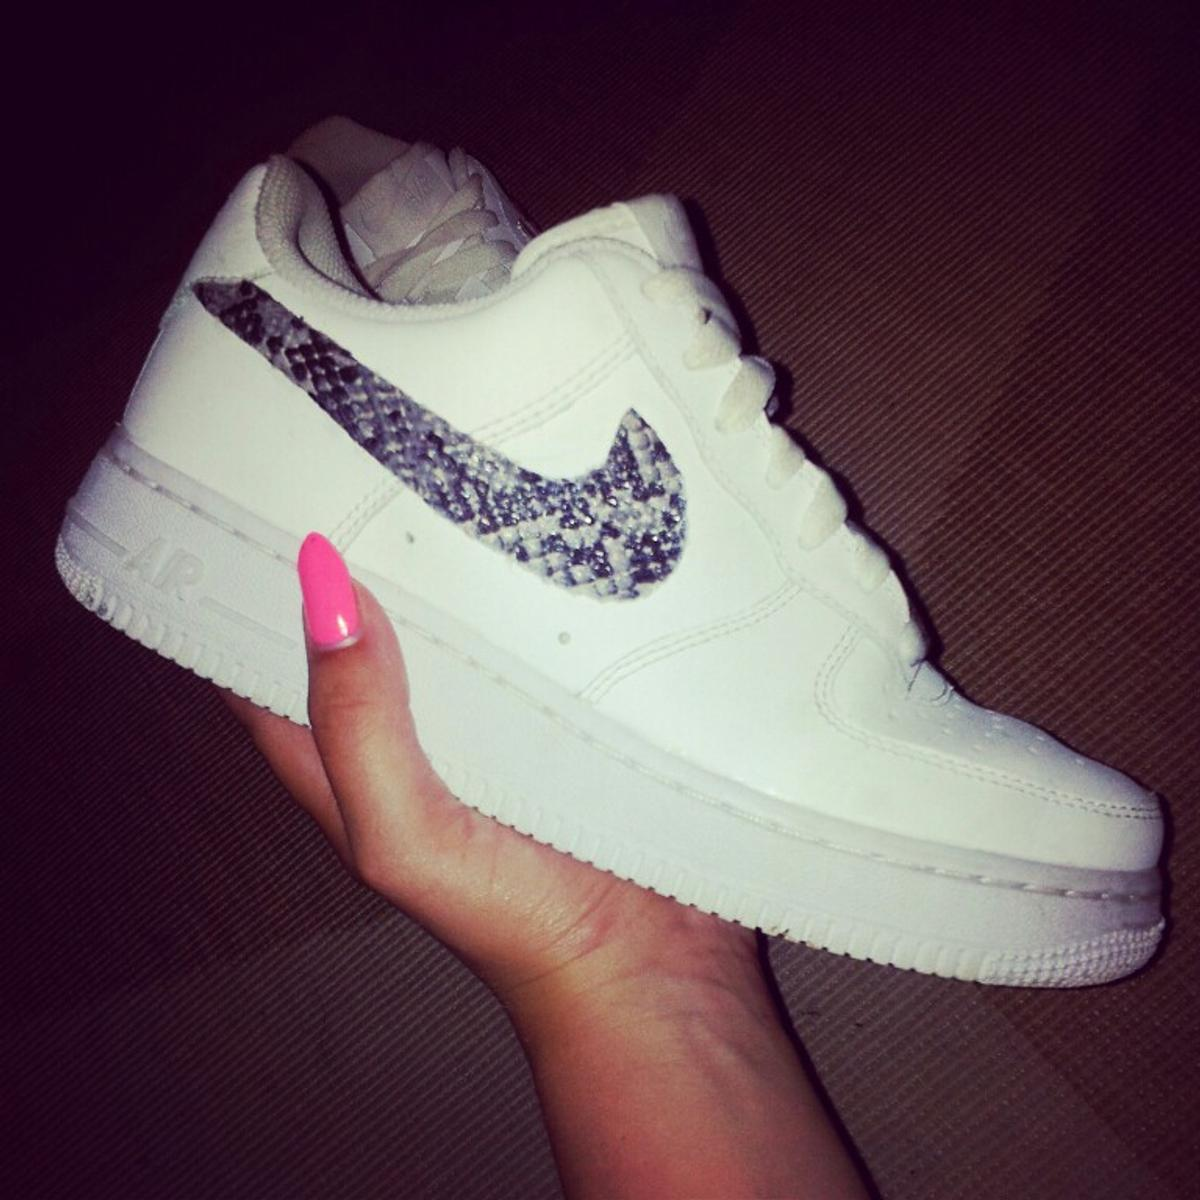 Nike air force 1 low mit schlangenmuster